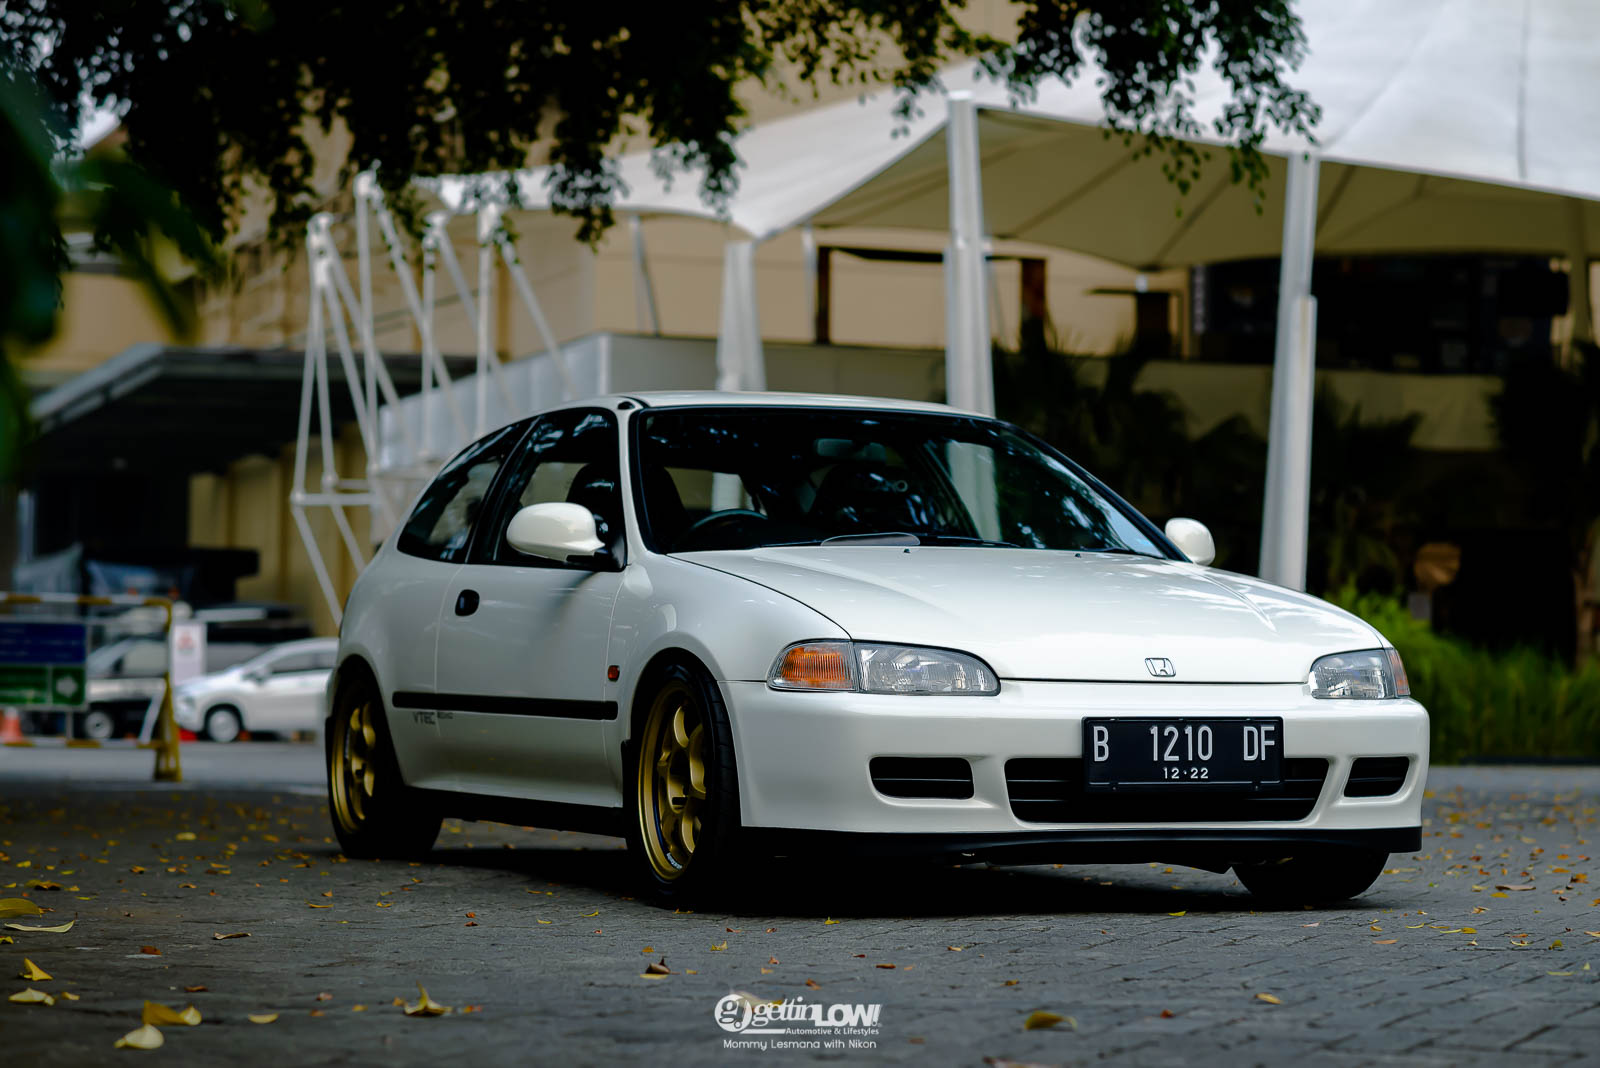 Rio Christian Honda Civic Estilo